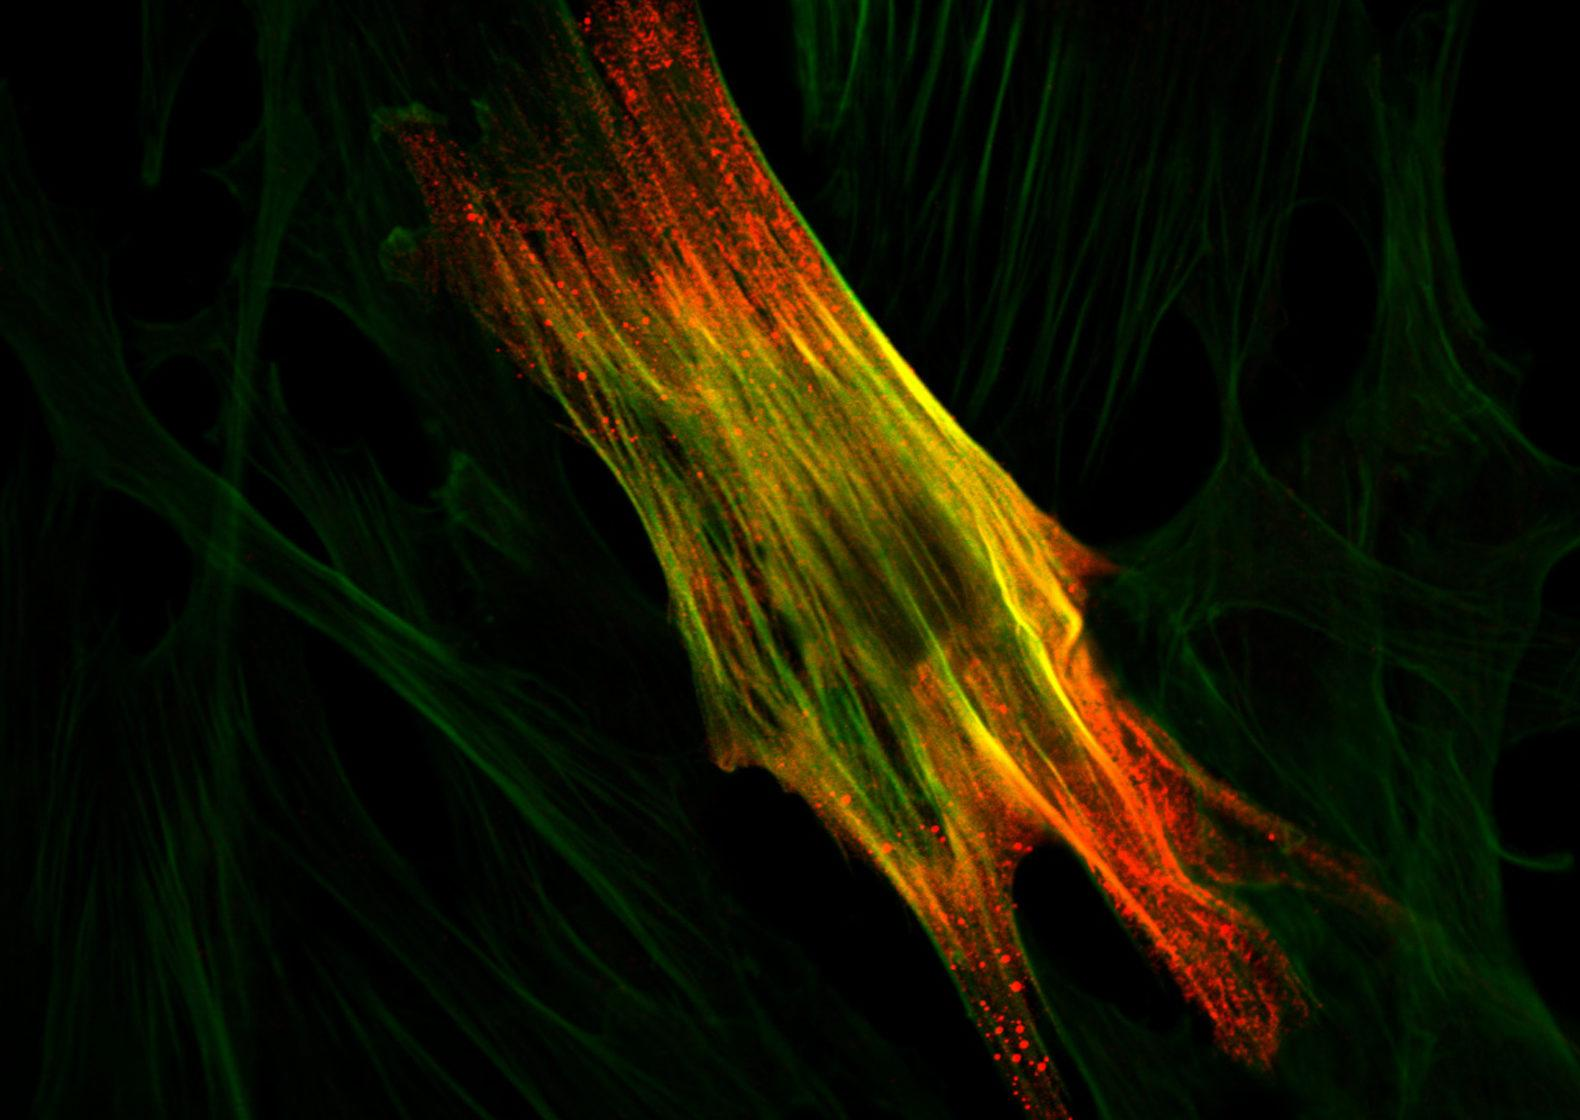 Immunoflourescence of a smooth muscle cell. Credit: Beano5.